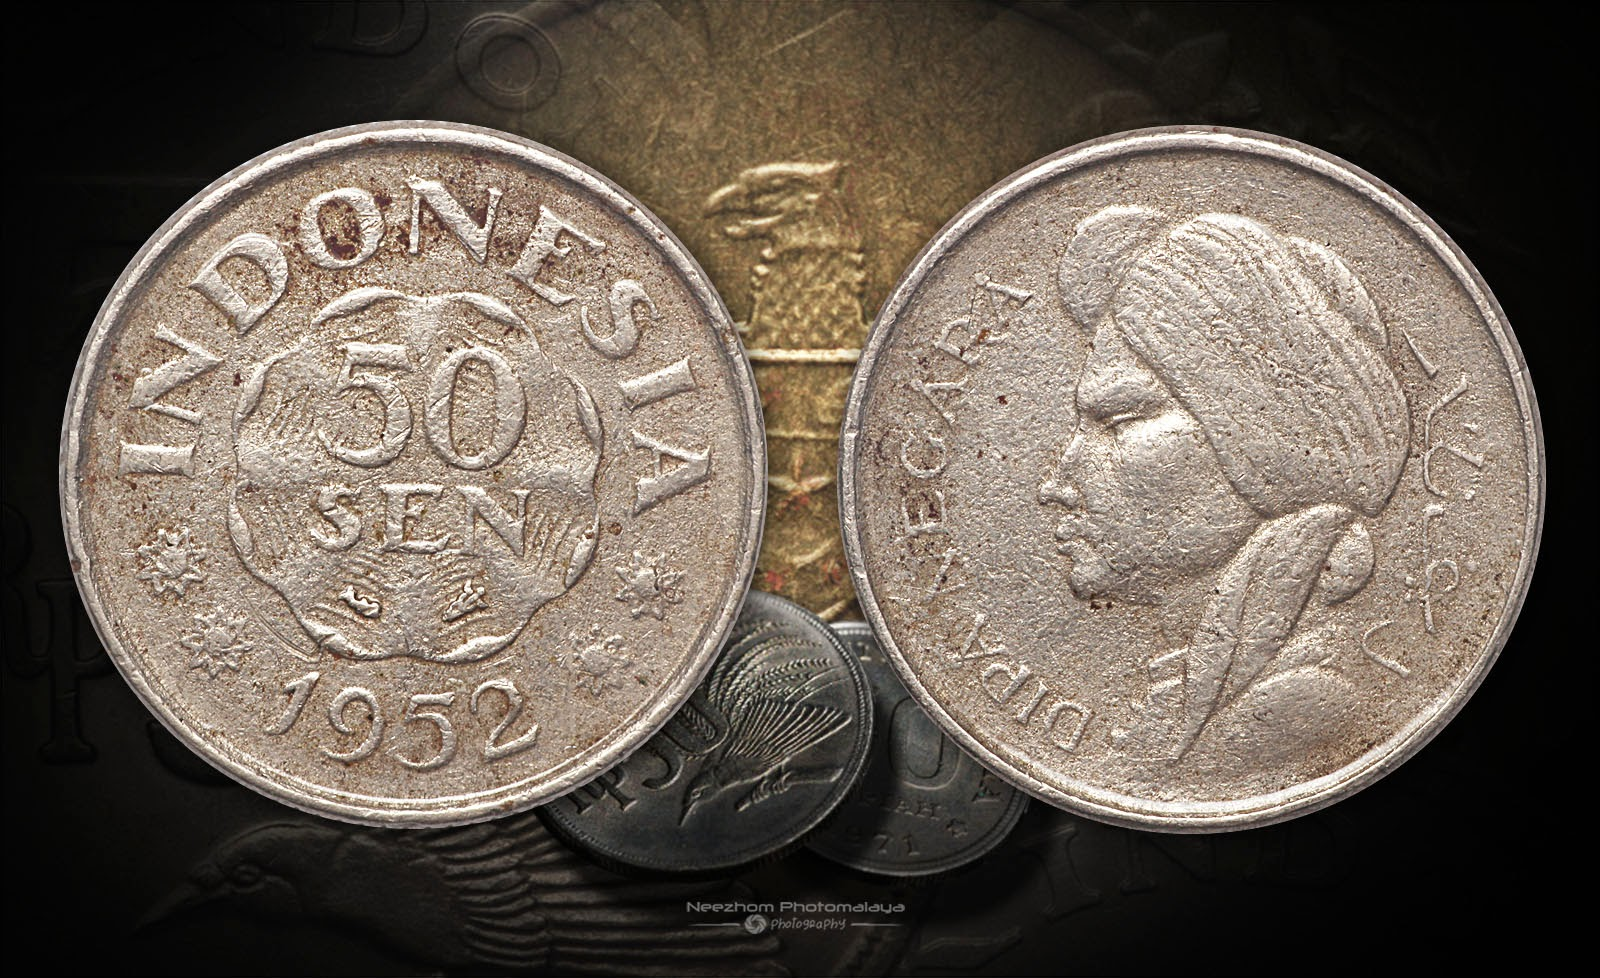 Indonesia old coin 50 Sen 1952